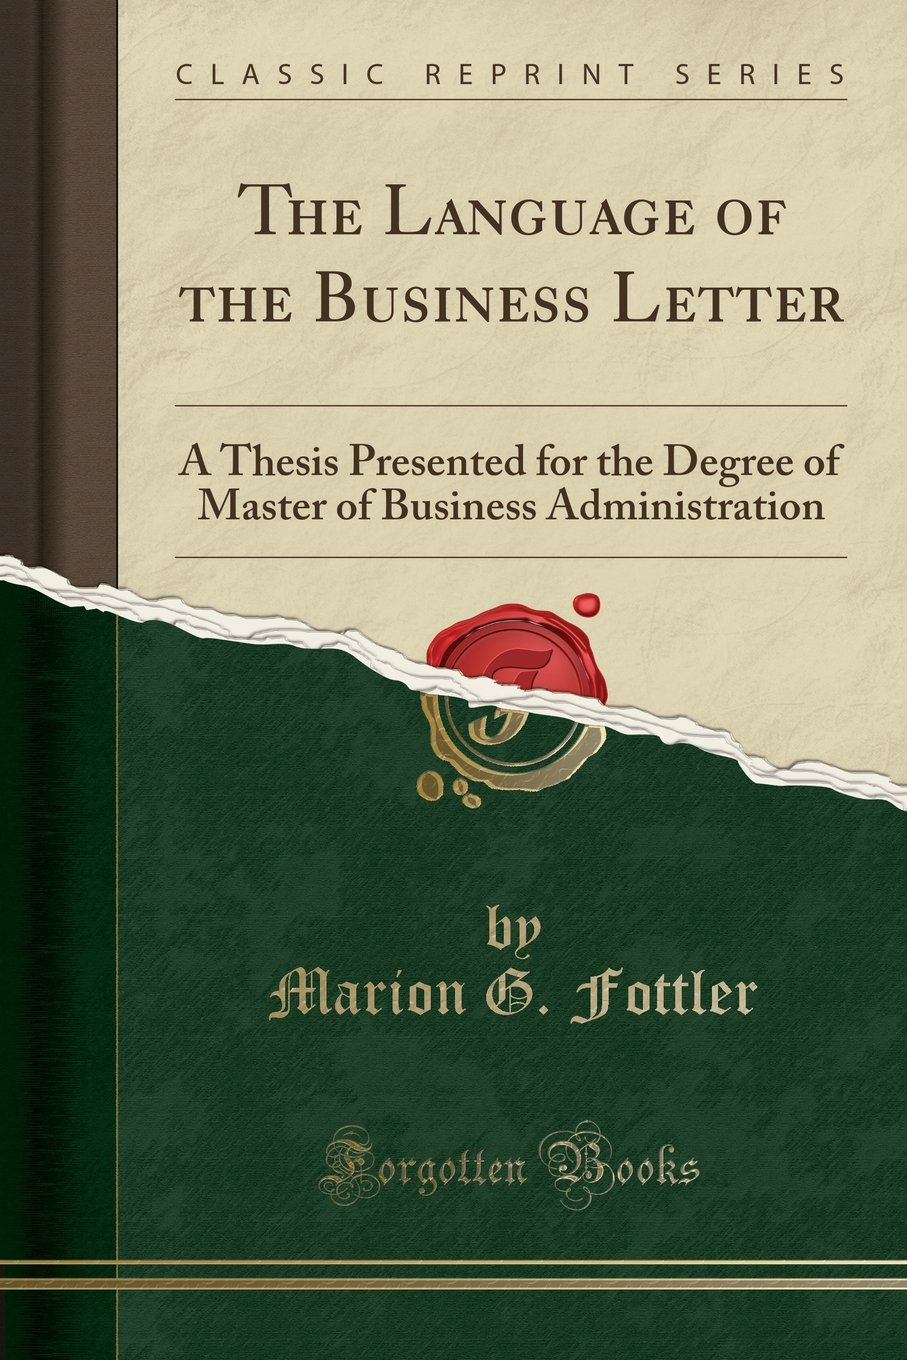 The Language of the Business Letter: A Thesis Presented for the Degree of Master of Business Administration (Classic Reprint) PDF